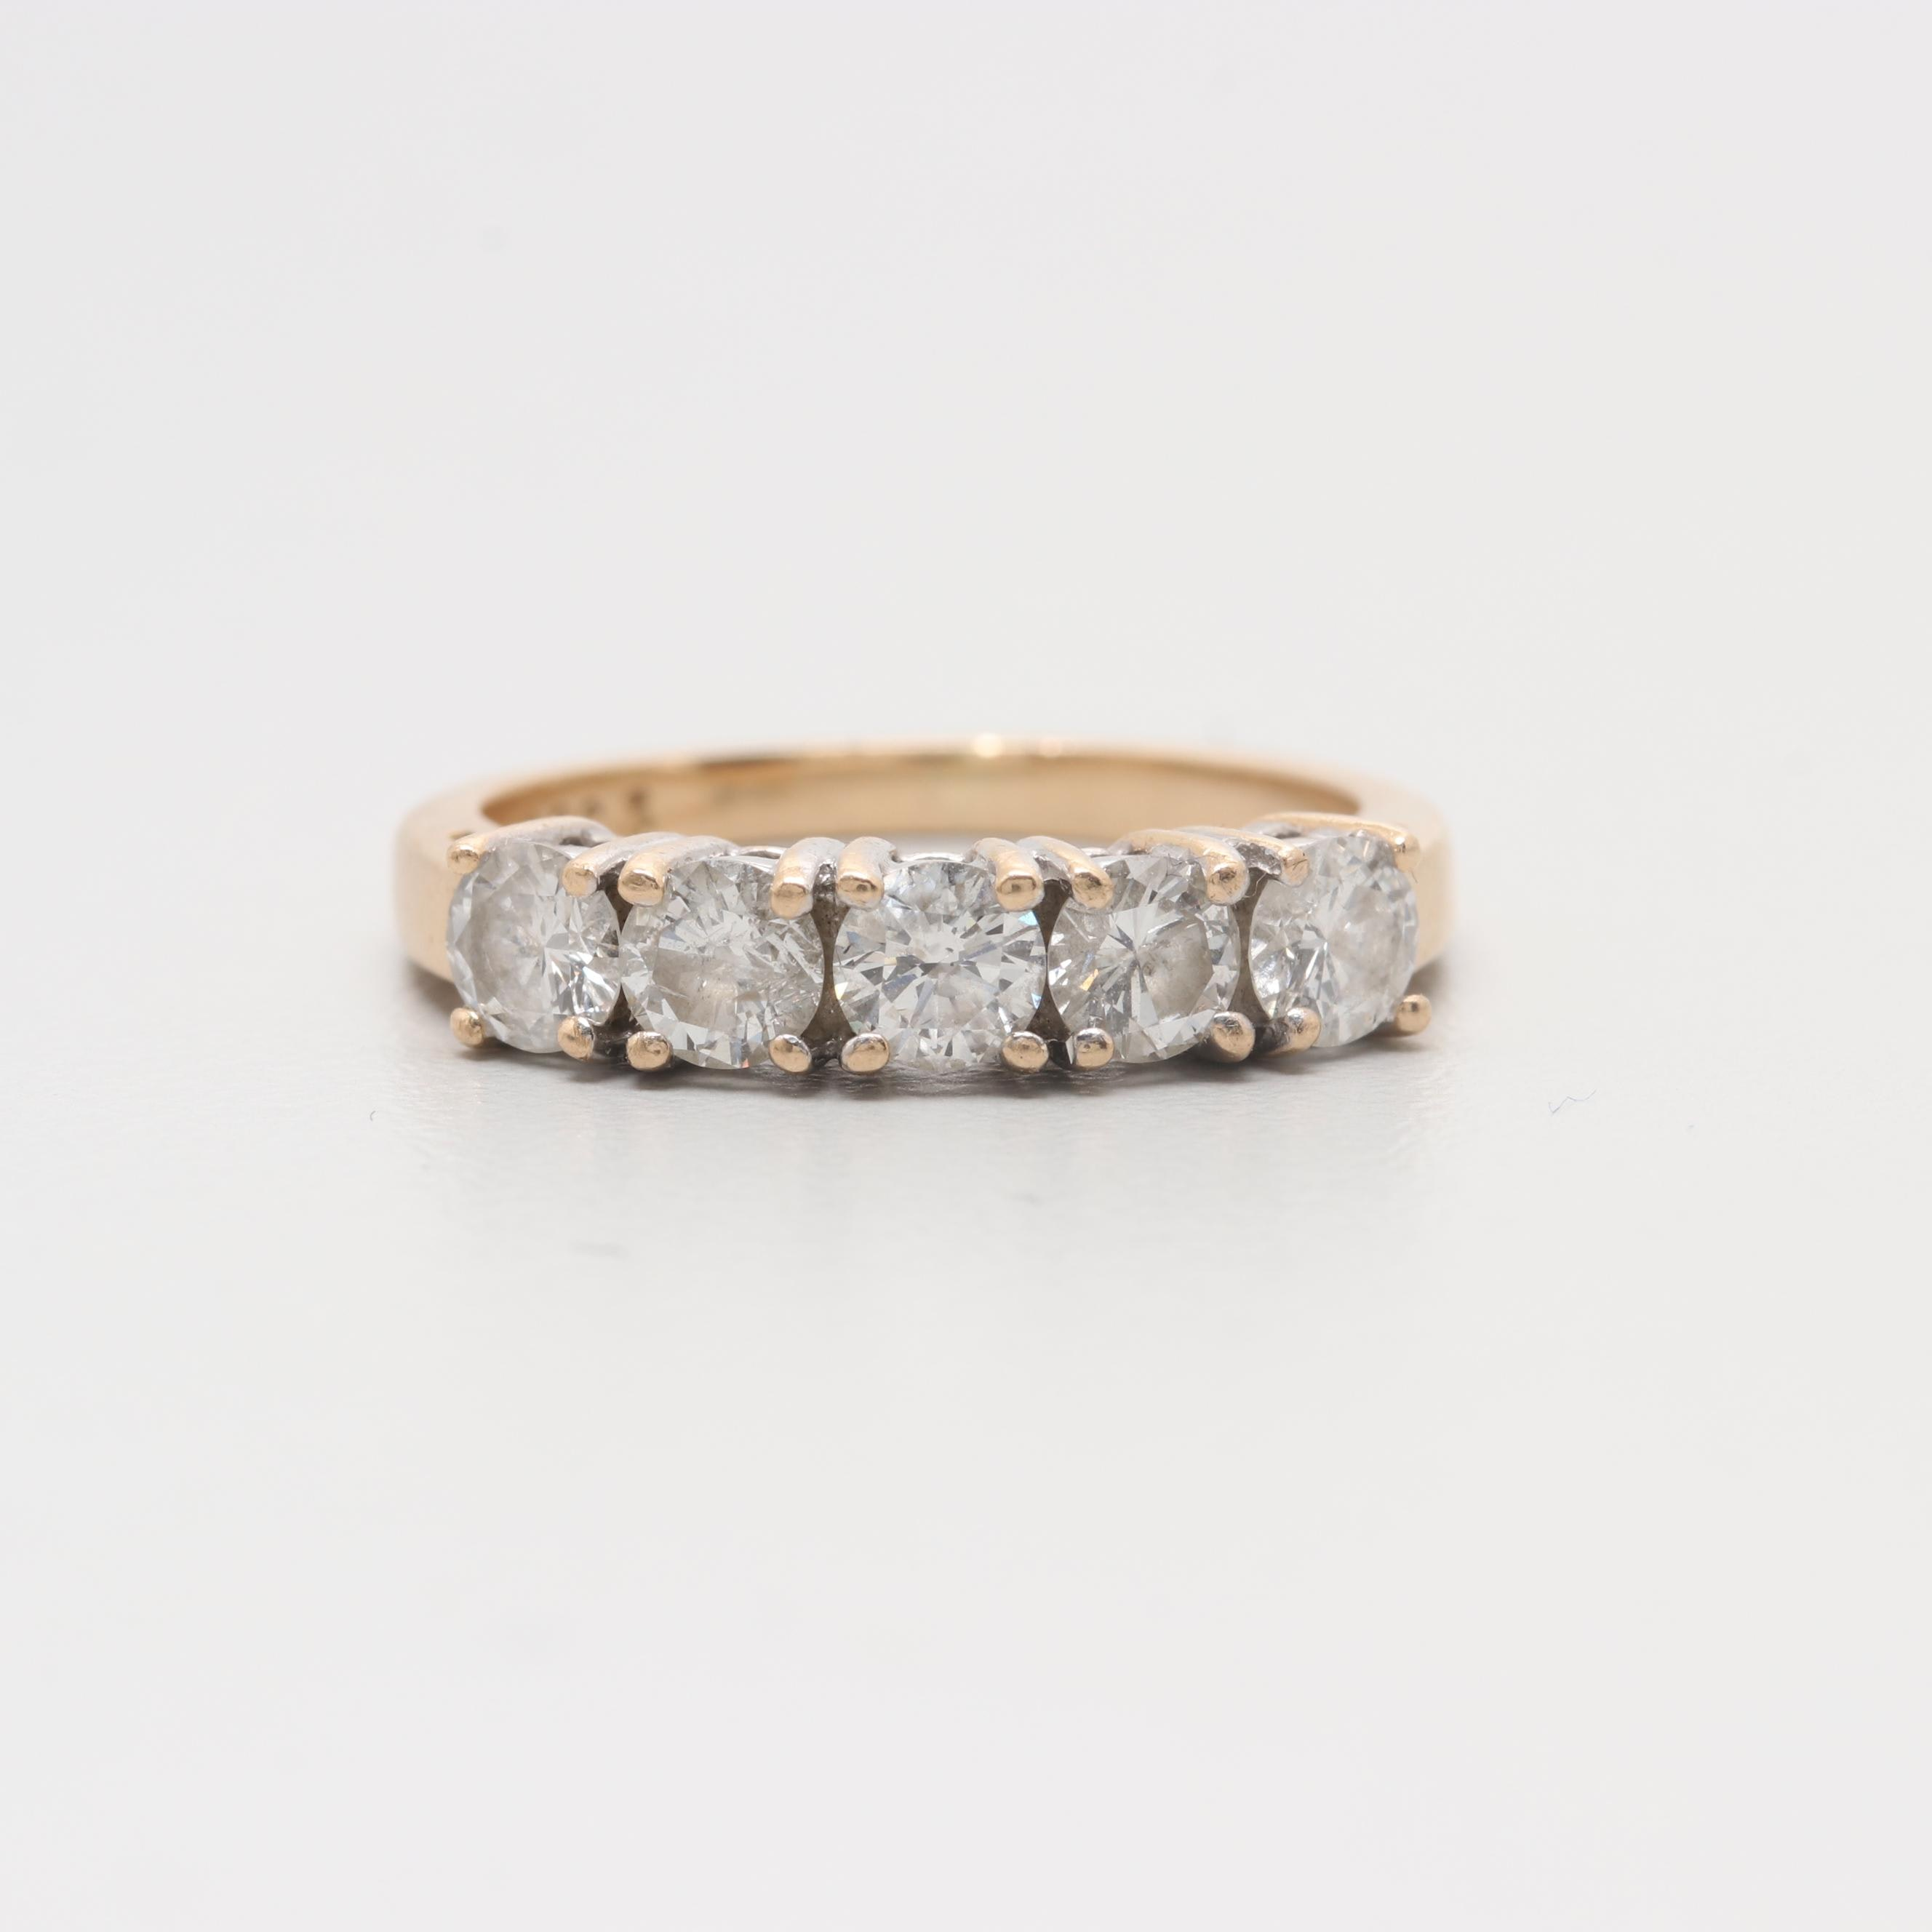 14K Yellow and White Gold 1.01 CTW Diamond Ring